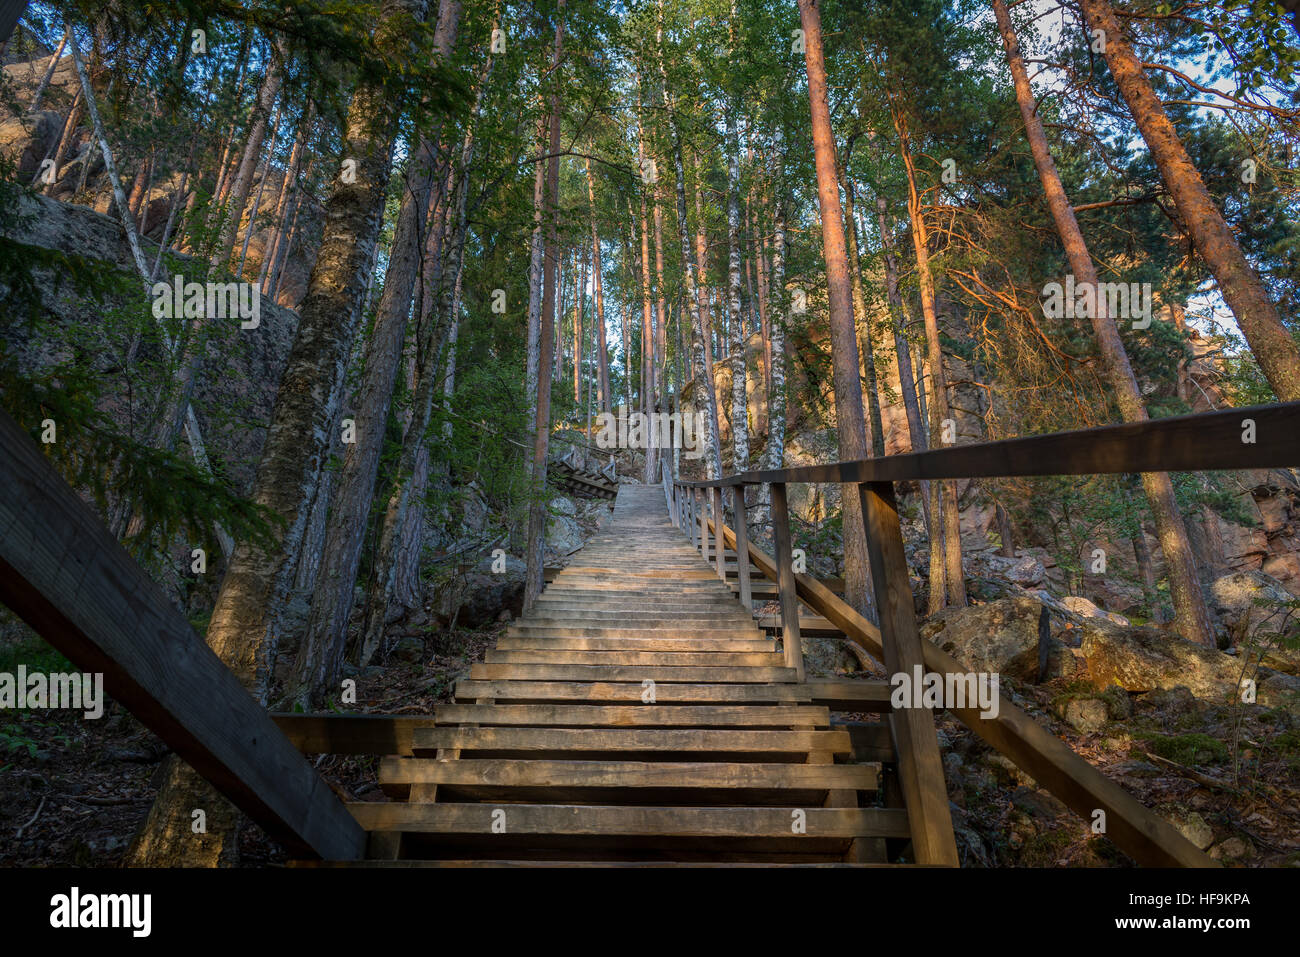 Wooden stairways through forest to the viewpoint - Stock Image